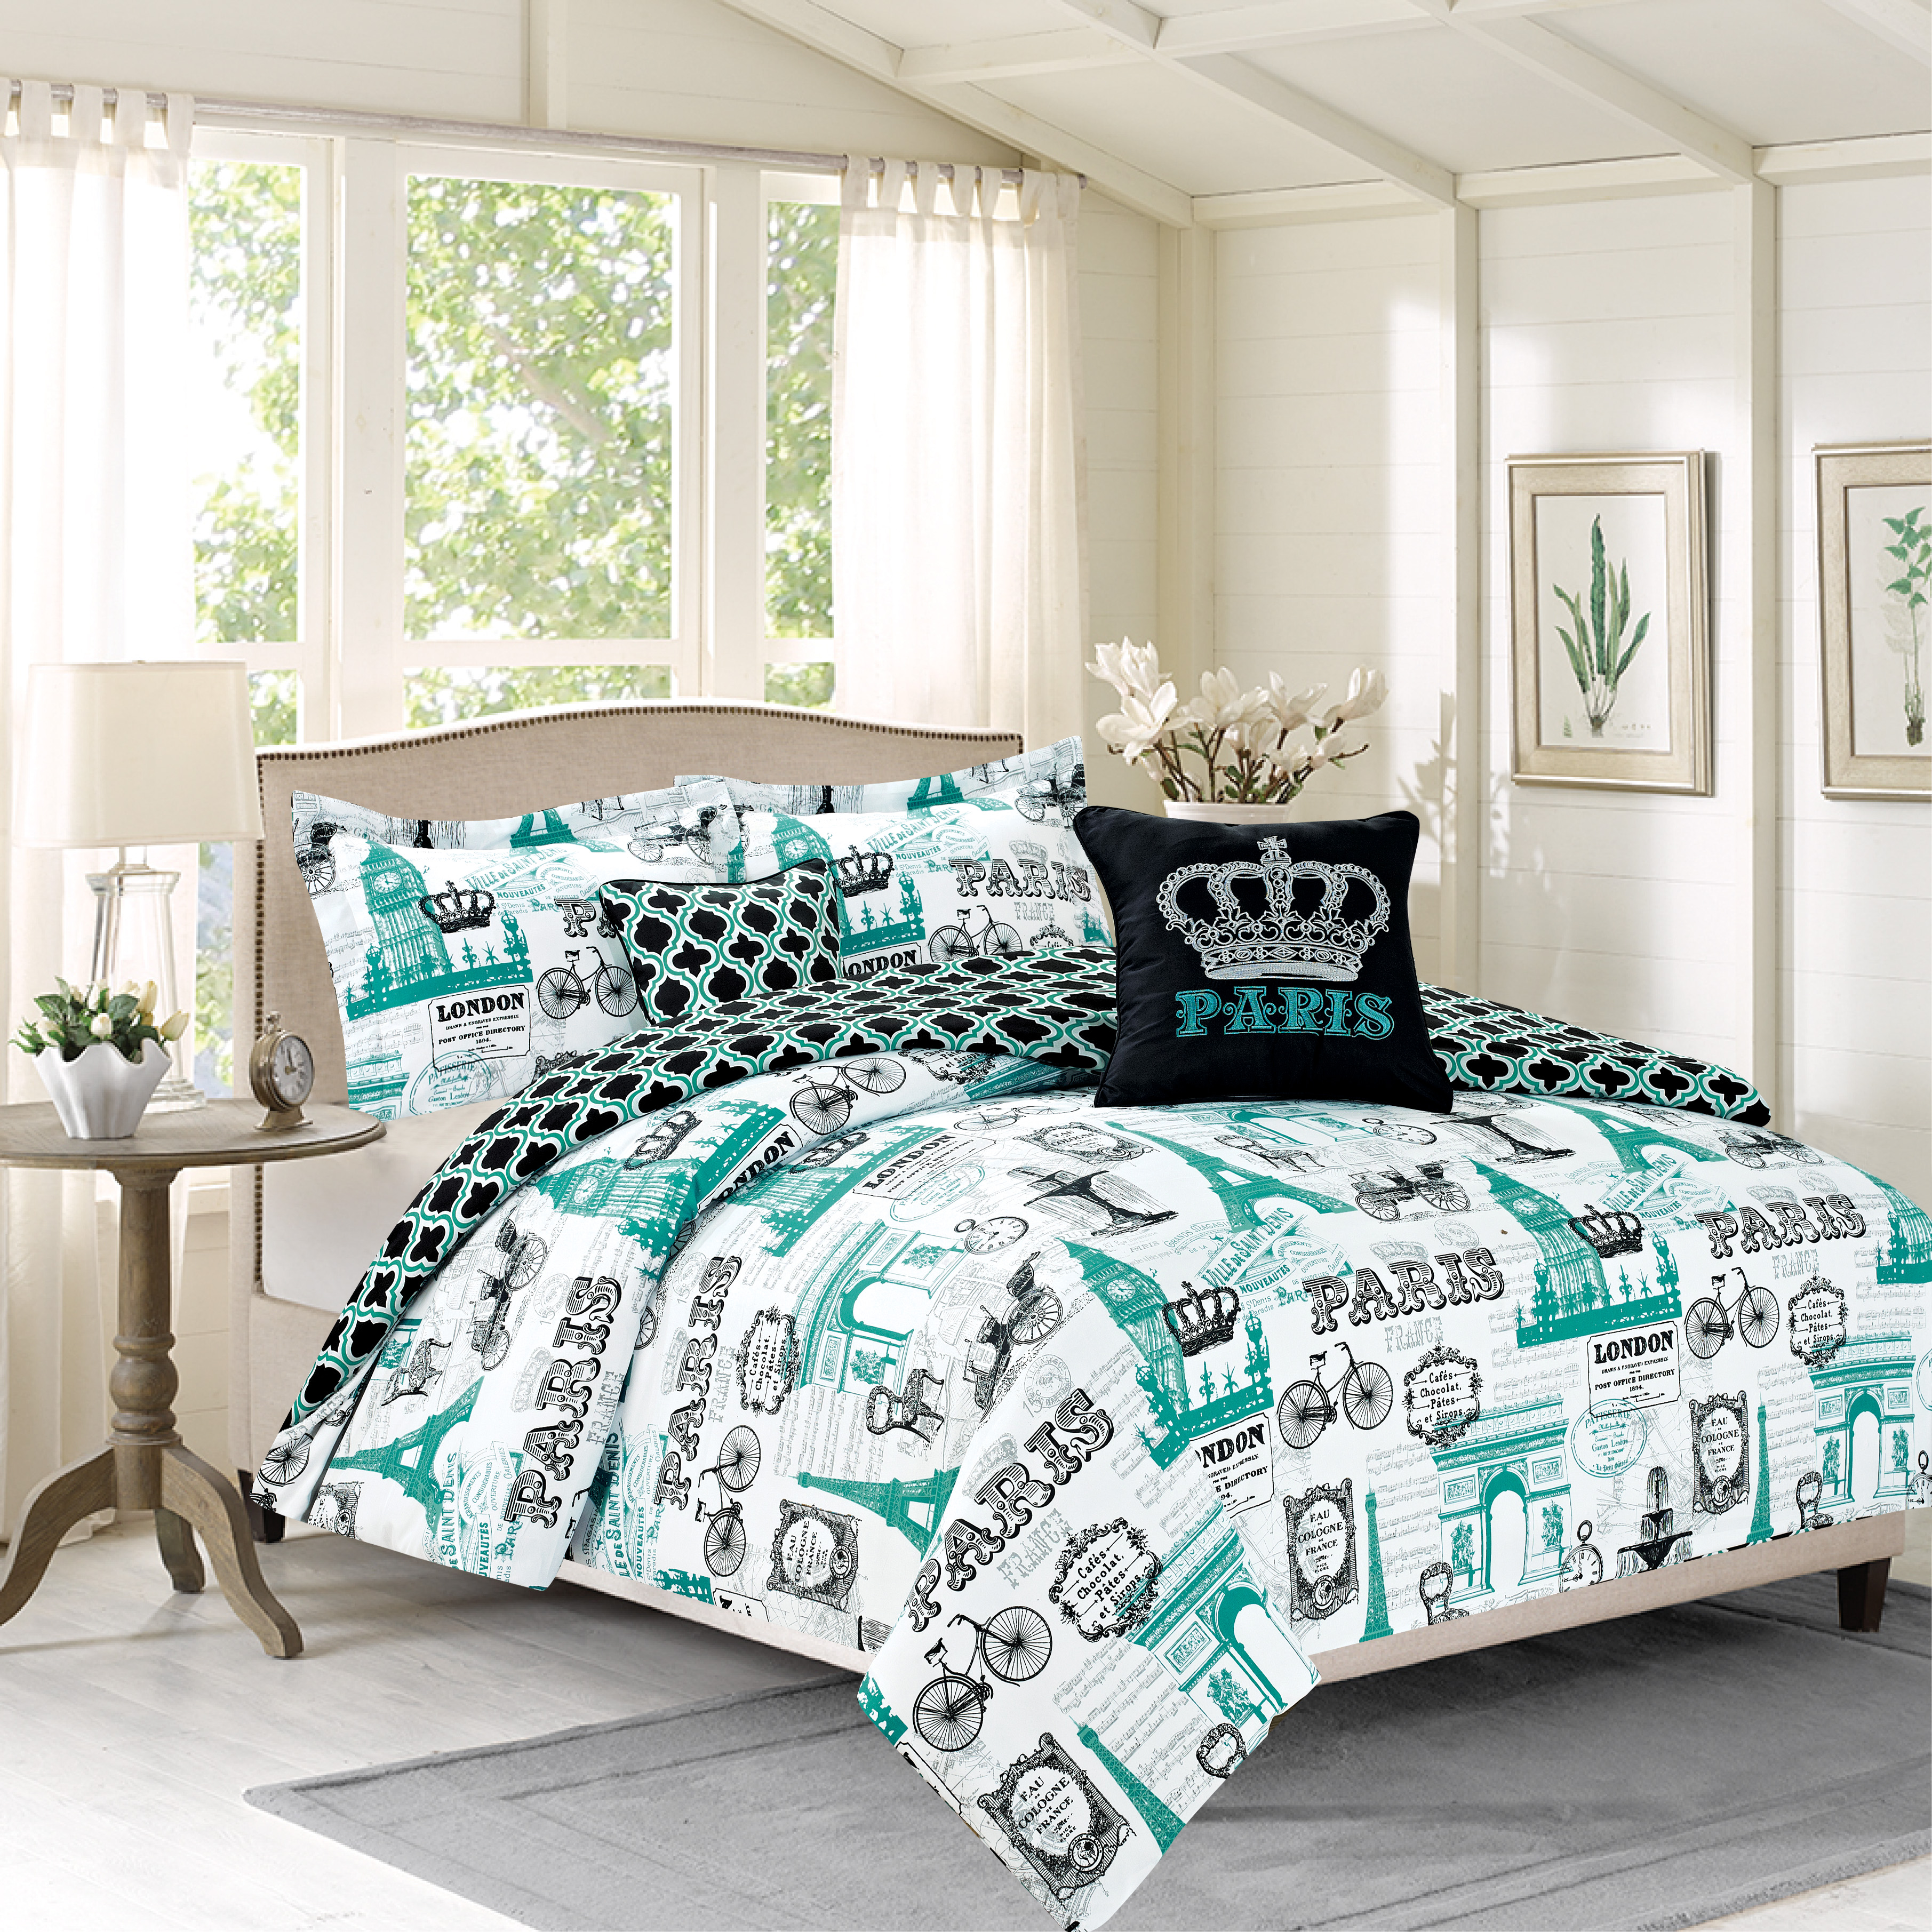 com deals twin quotations shopping medallion line blue piece pattern bed at stripe bedding alibaba get bag cheap in microfiber chic find teen guides a girls elegant on